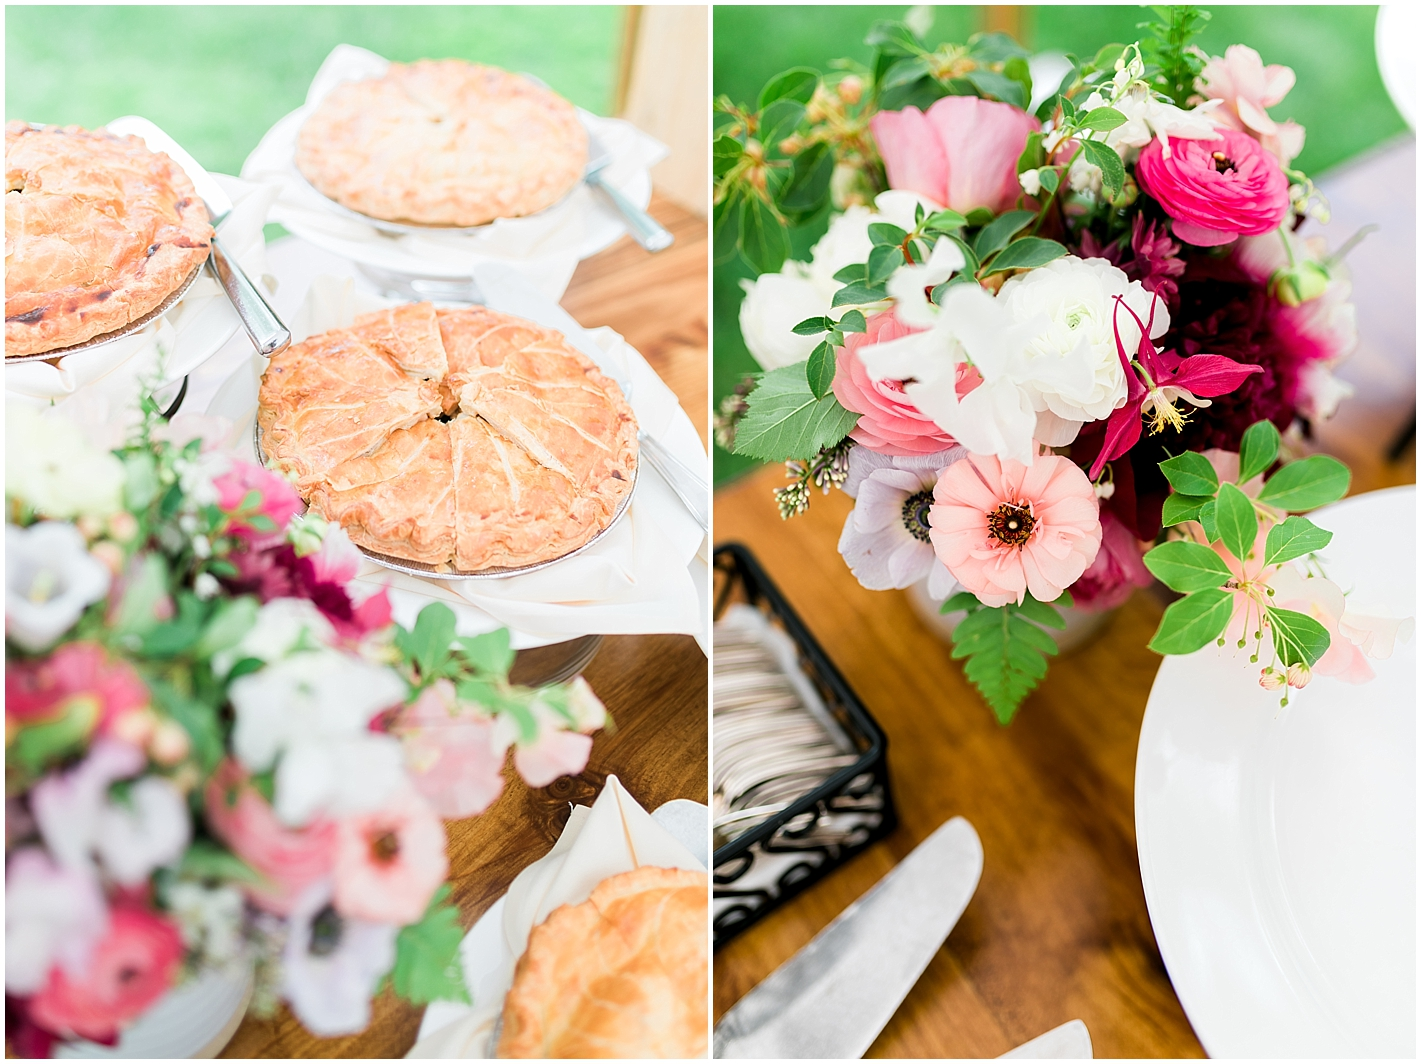 Wedding Pie Photos by Alyssa Parker Photography